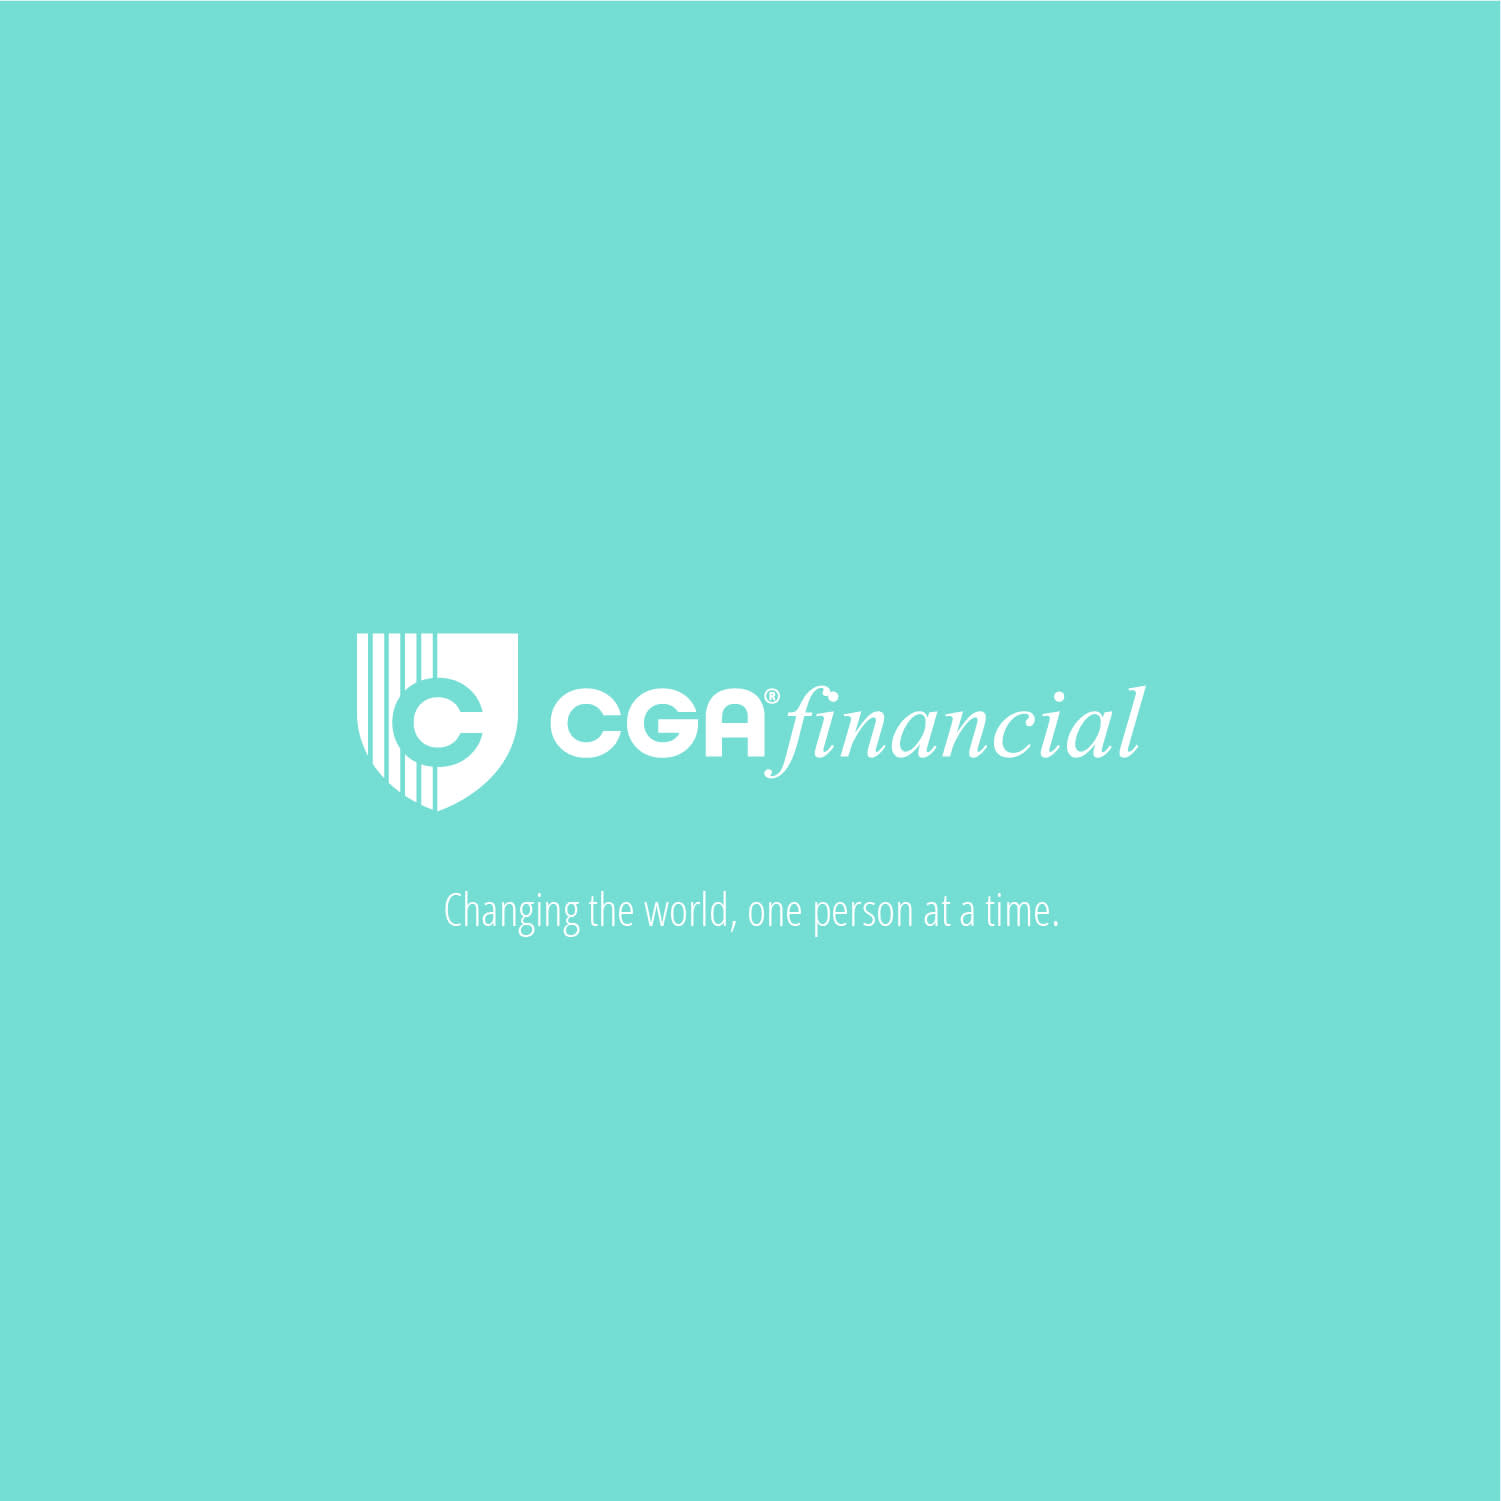 CGA Financial: Brand Identity